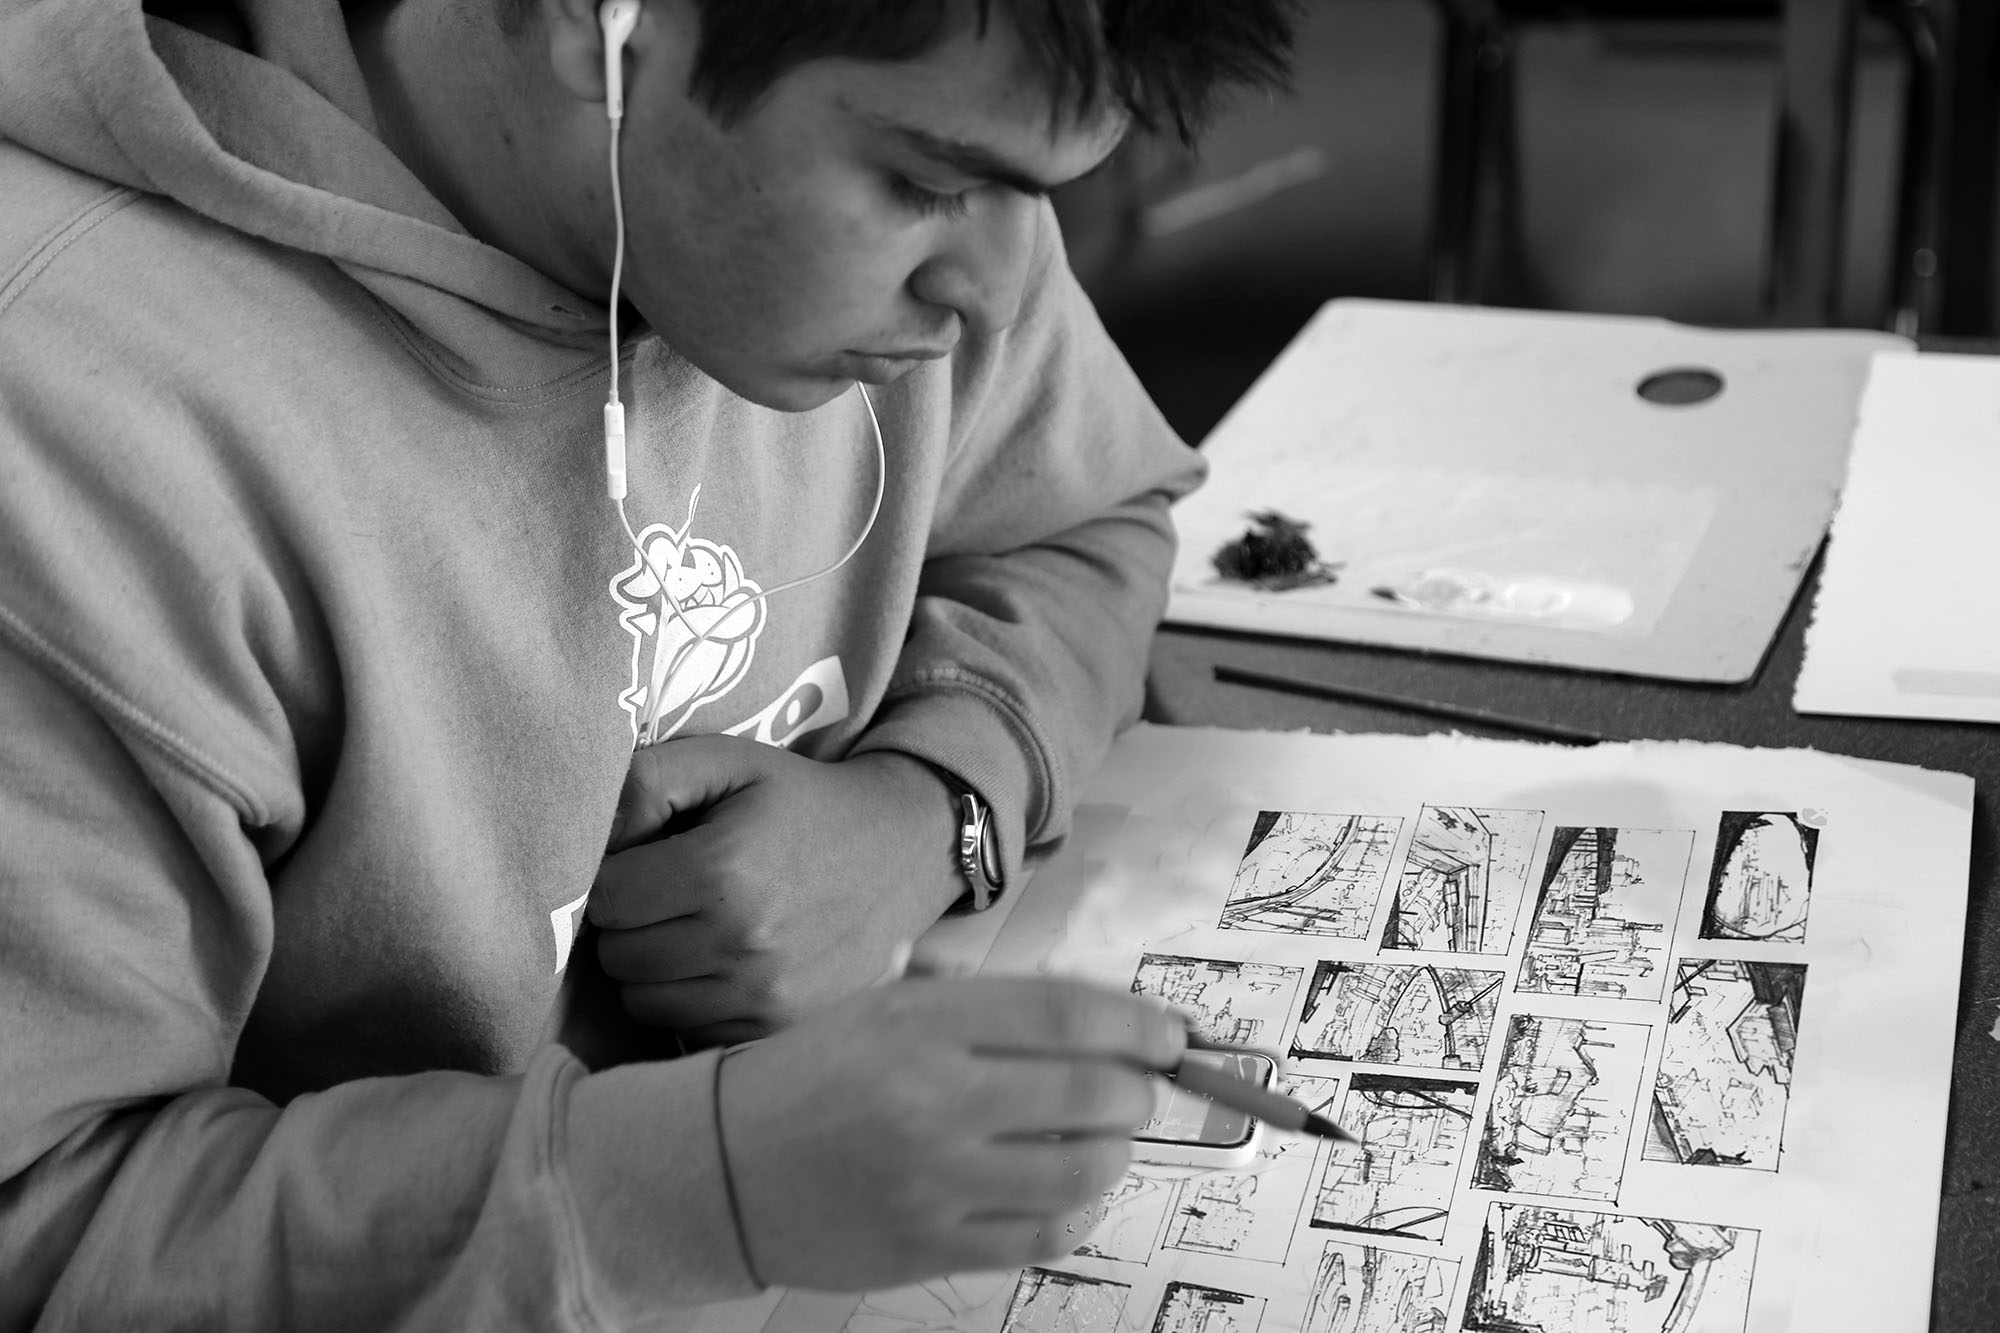 Student puts together a storyboard, Provo High School